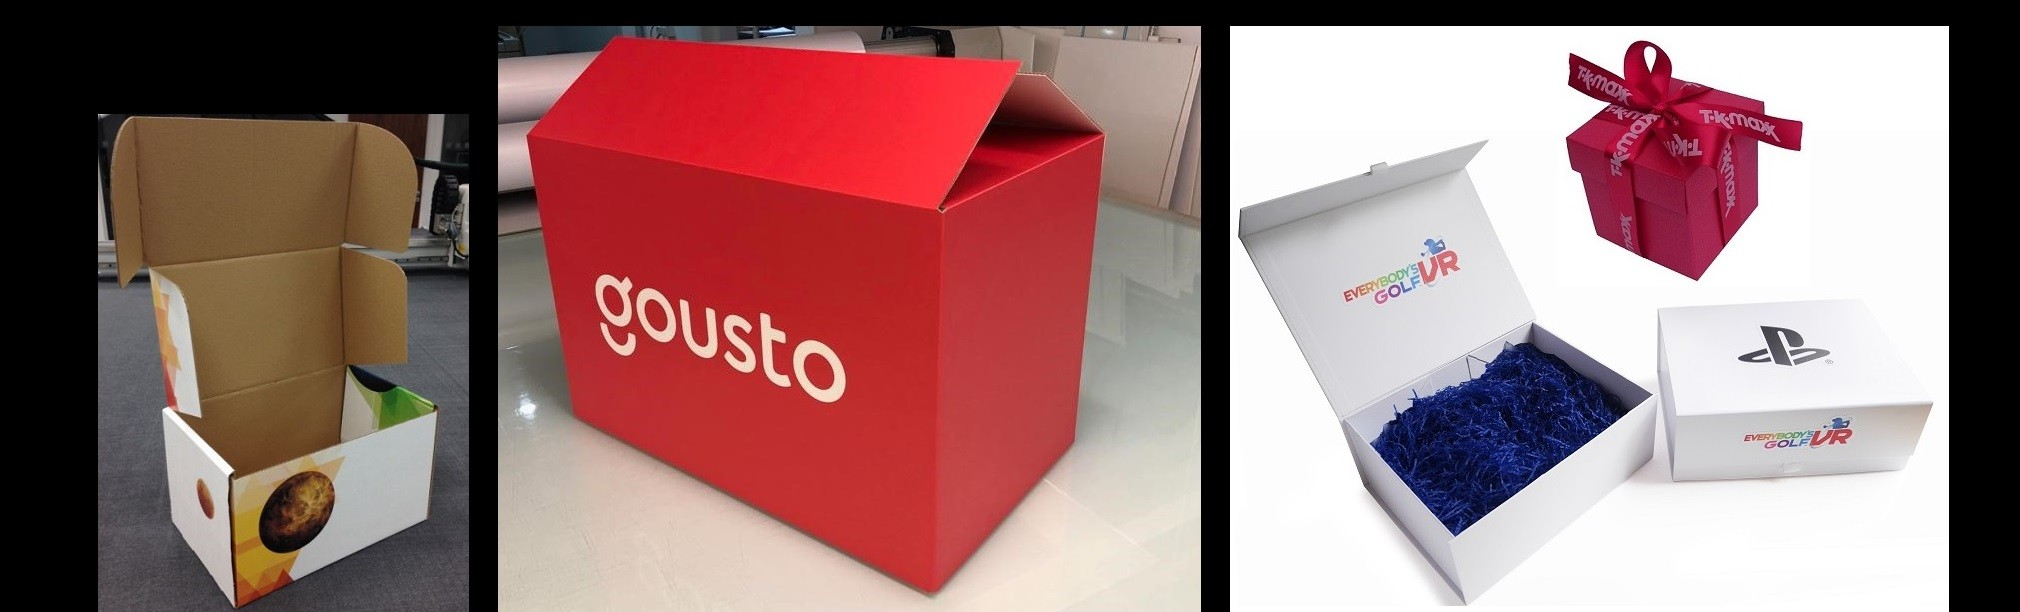 Slideshow Gousto Boxes Printed Cardboard